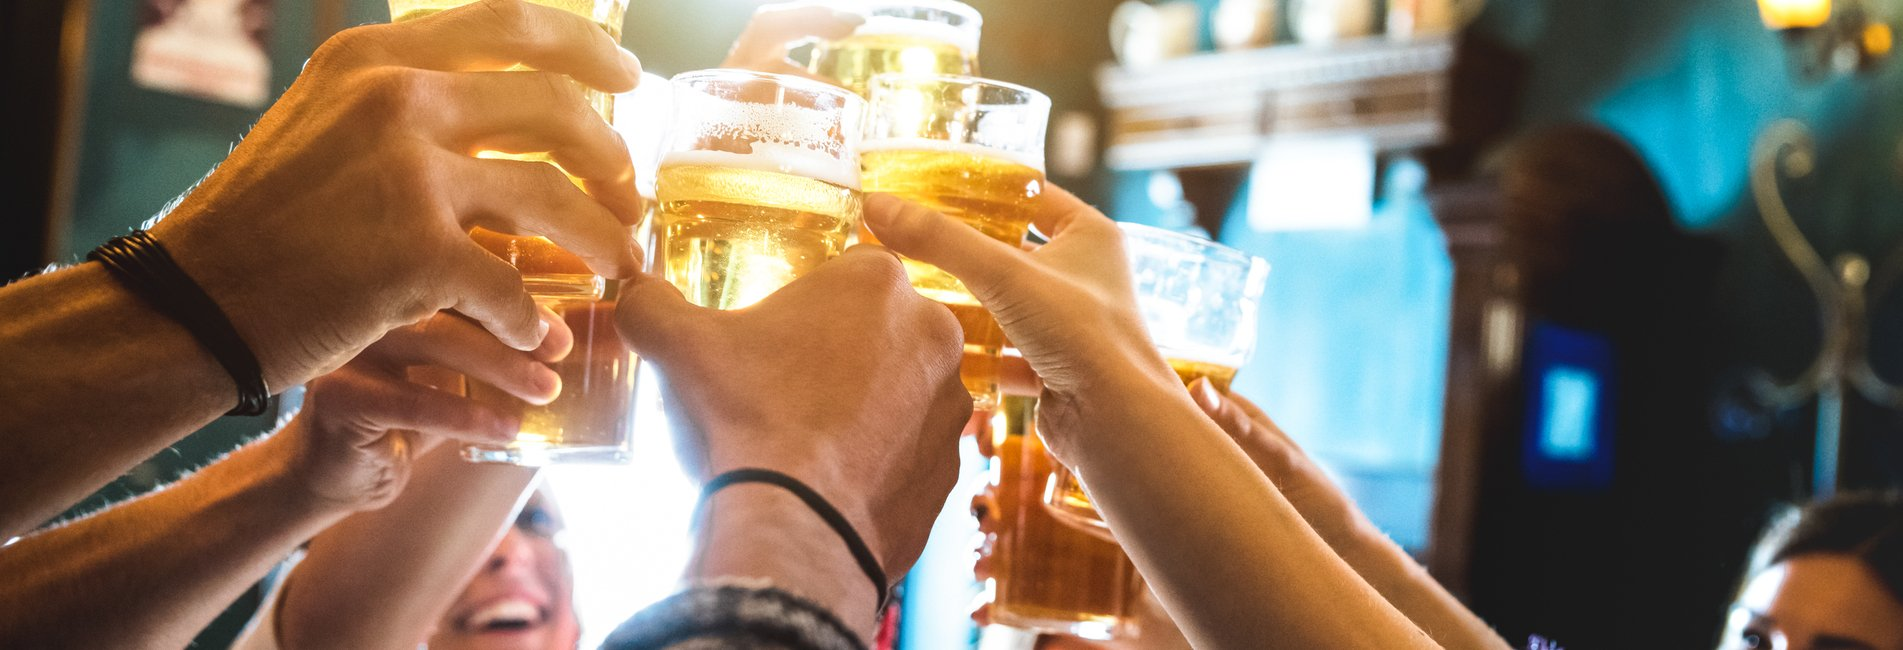 What is Binge Drinking Resurgence – Binge drinking college students toast at a local bar.